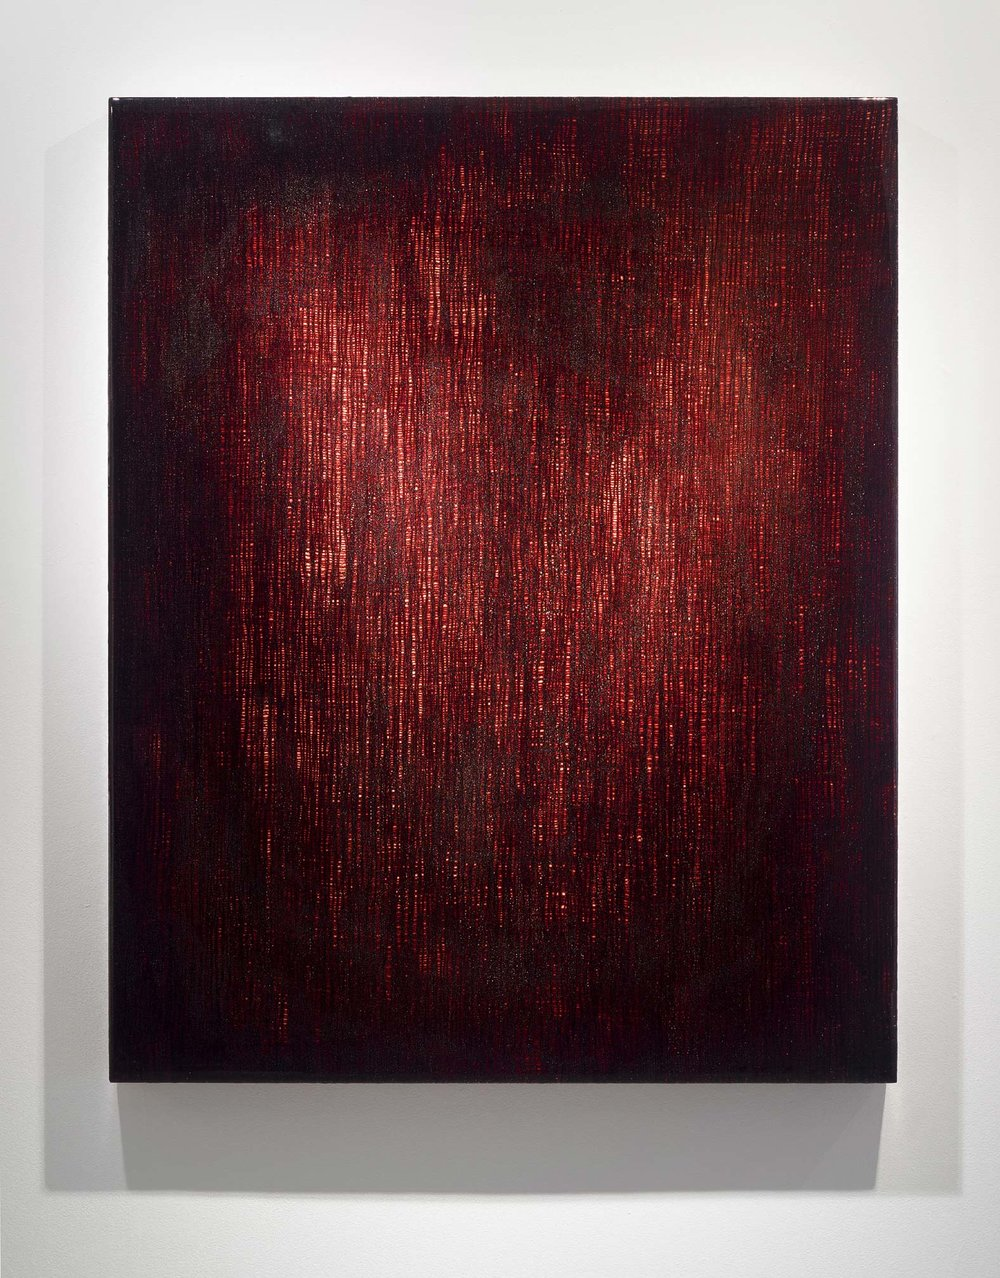 "ROZE 18, 2012 60 x 48 x 3"" blood, gauze, preserved on plexiglass, UV resin"